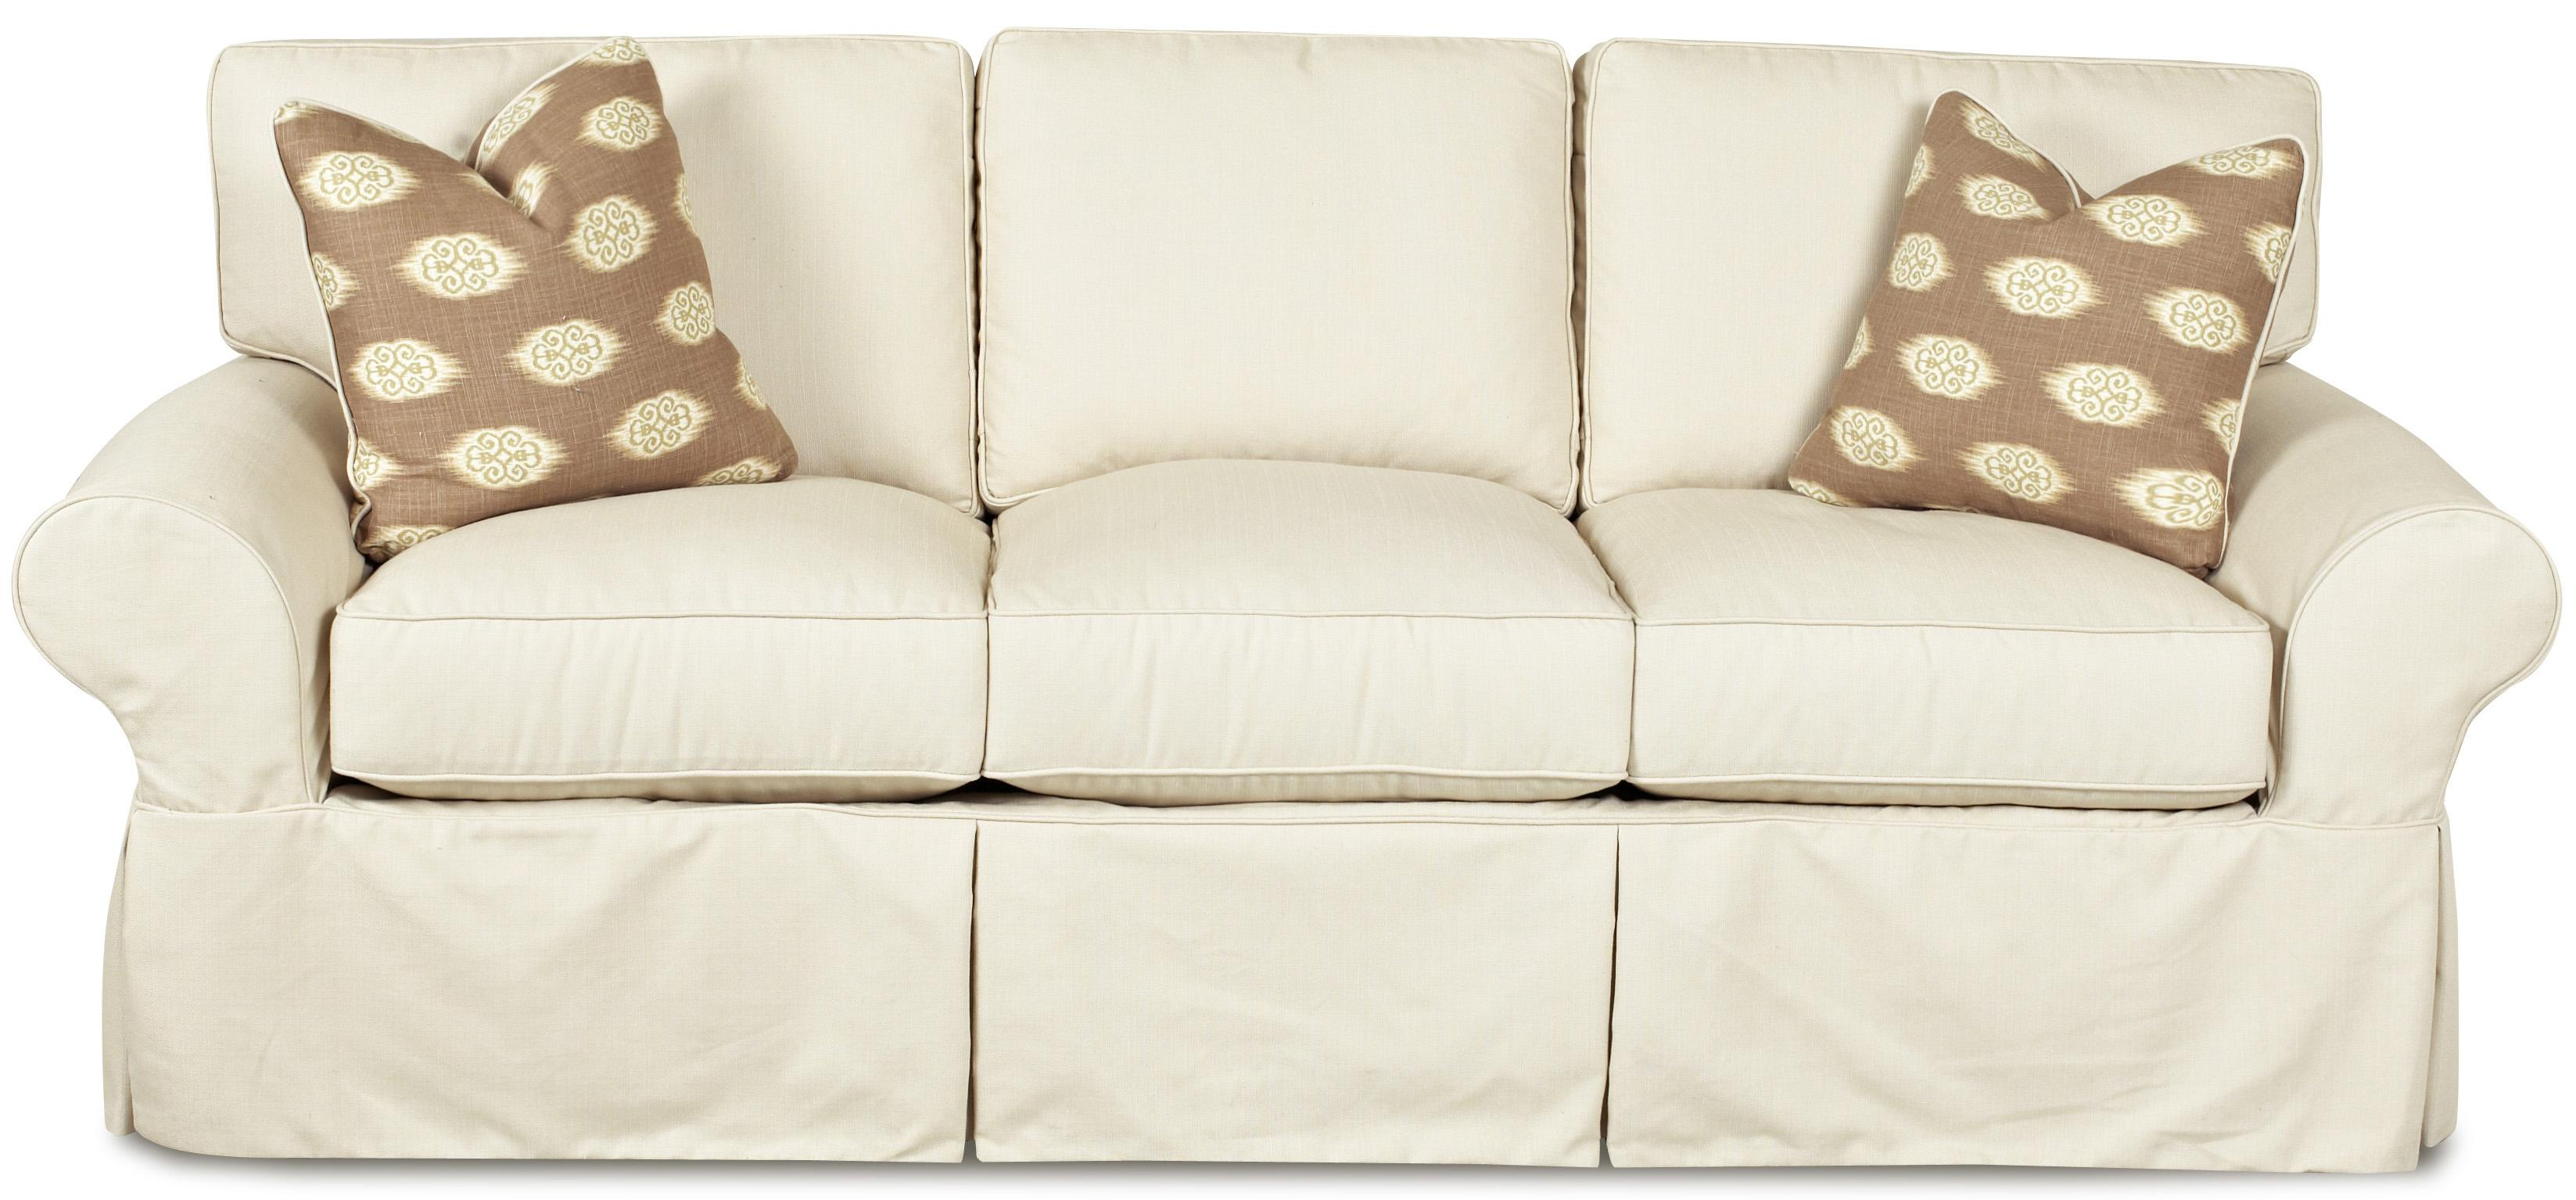 slipcovered sofa with rolled arms and tailored skirt